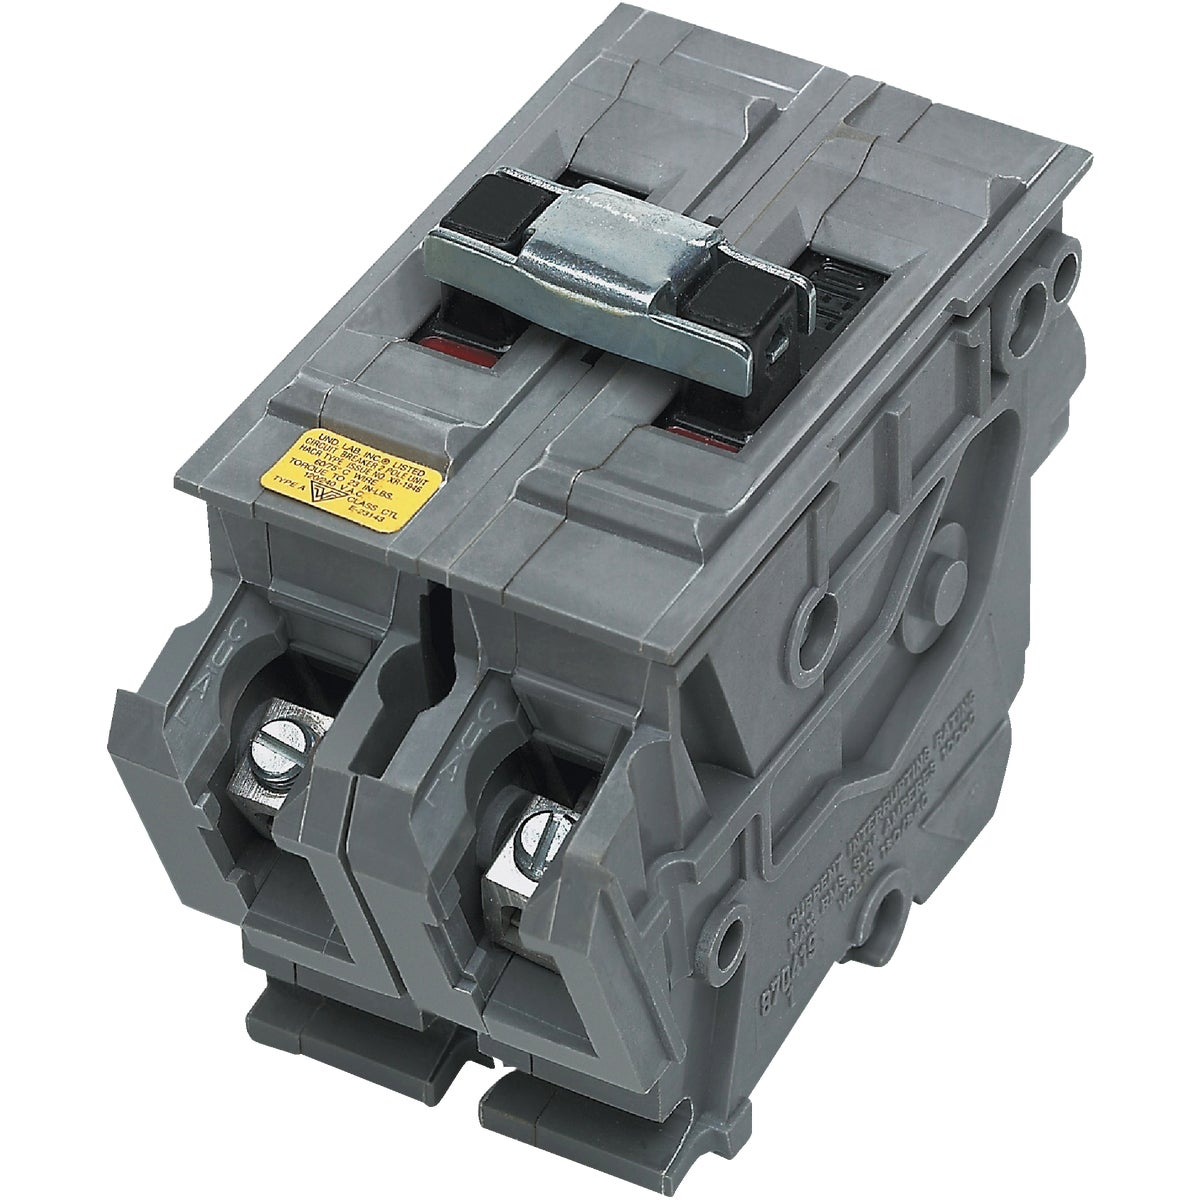 60A 2P CIRCUIT BREAKER - WA260 by Connecticut Electric